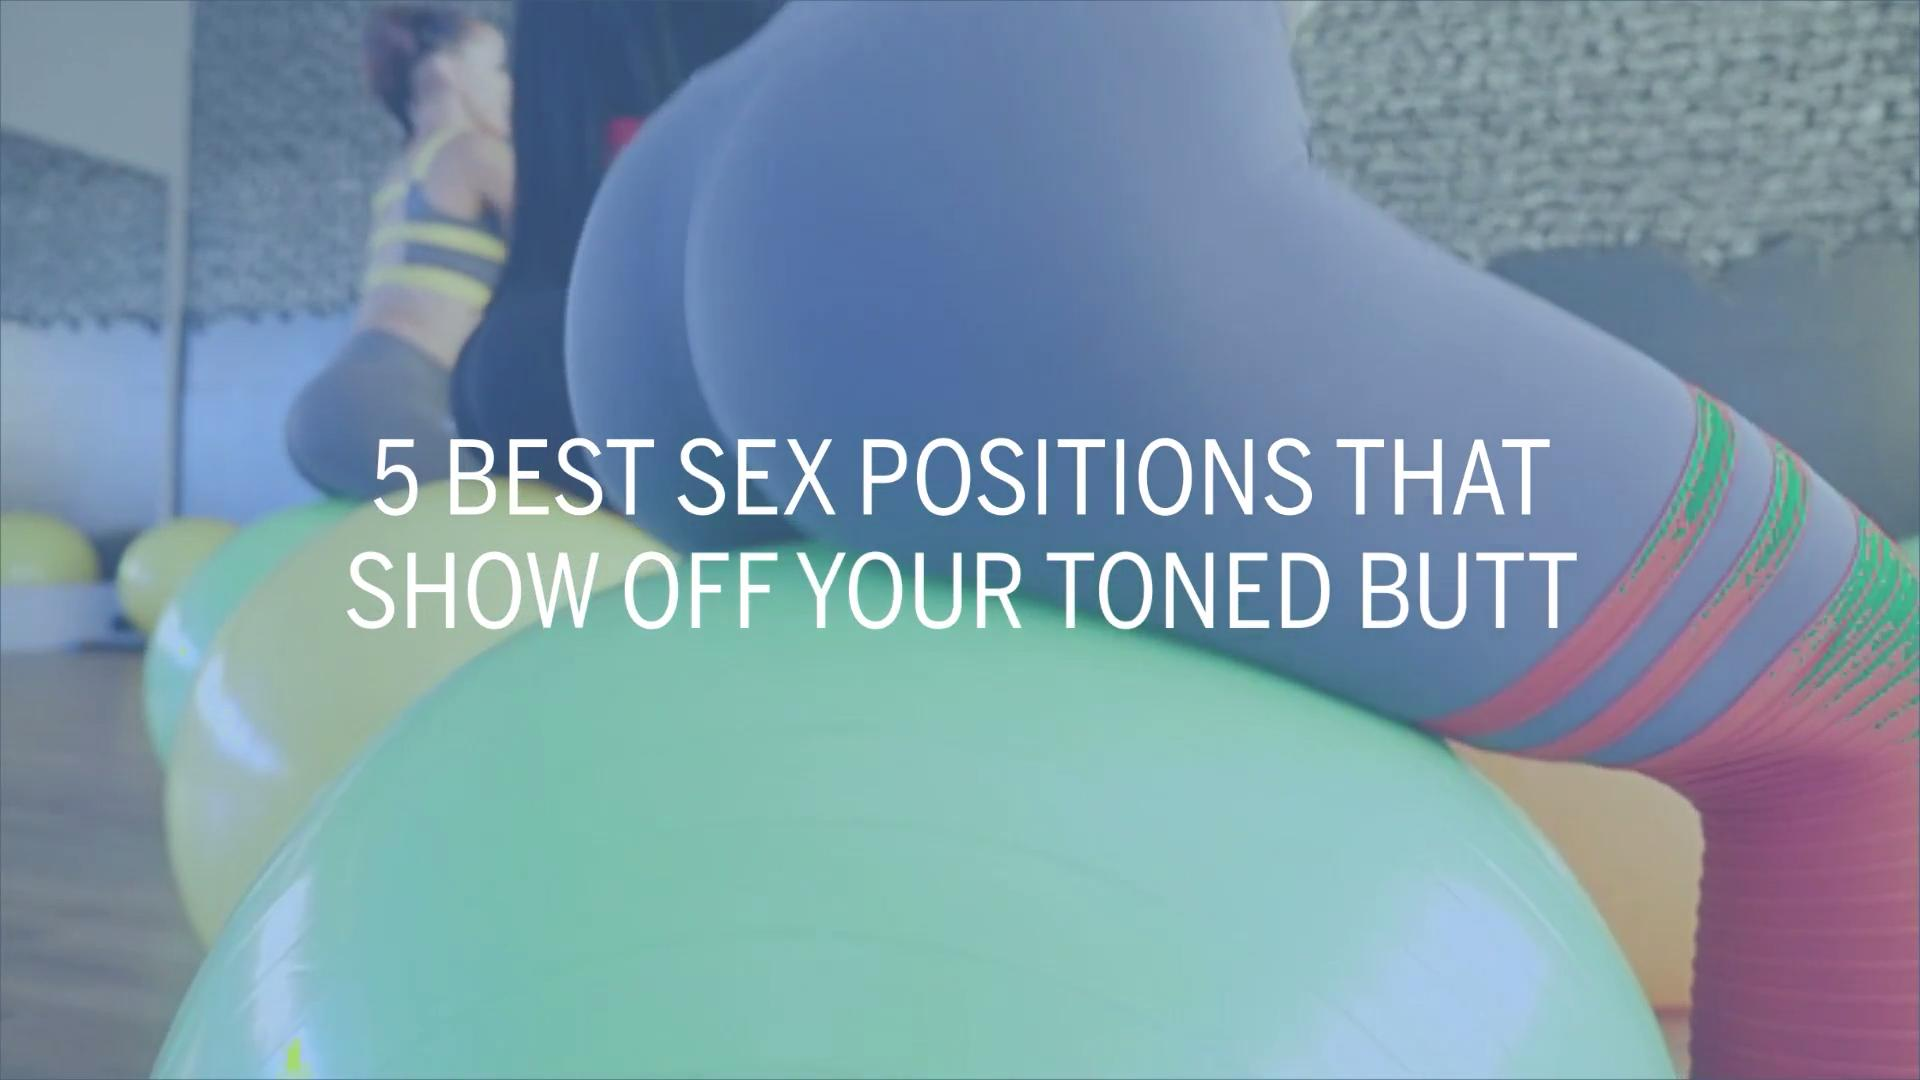 There's best sex positions wet vagina accept. The